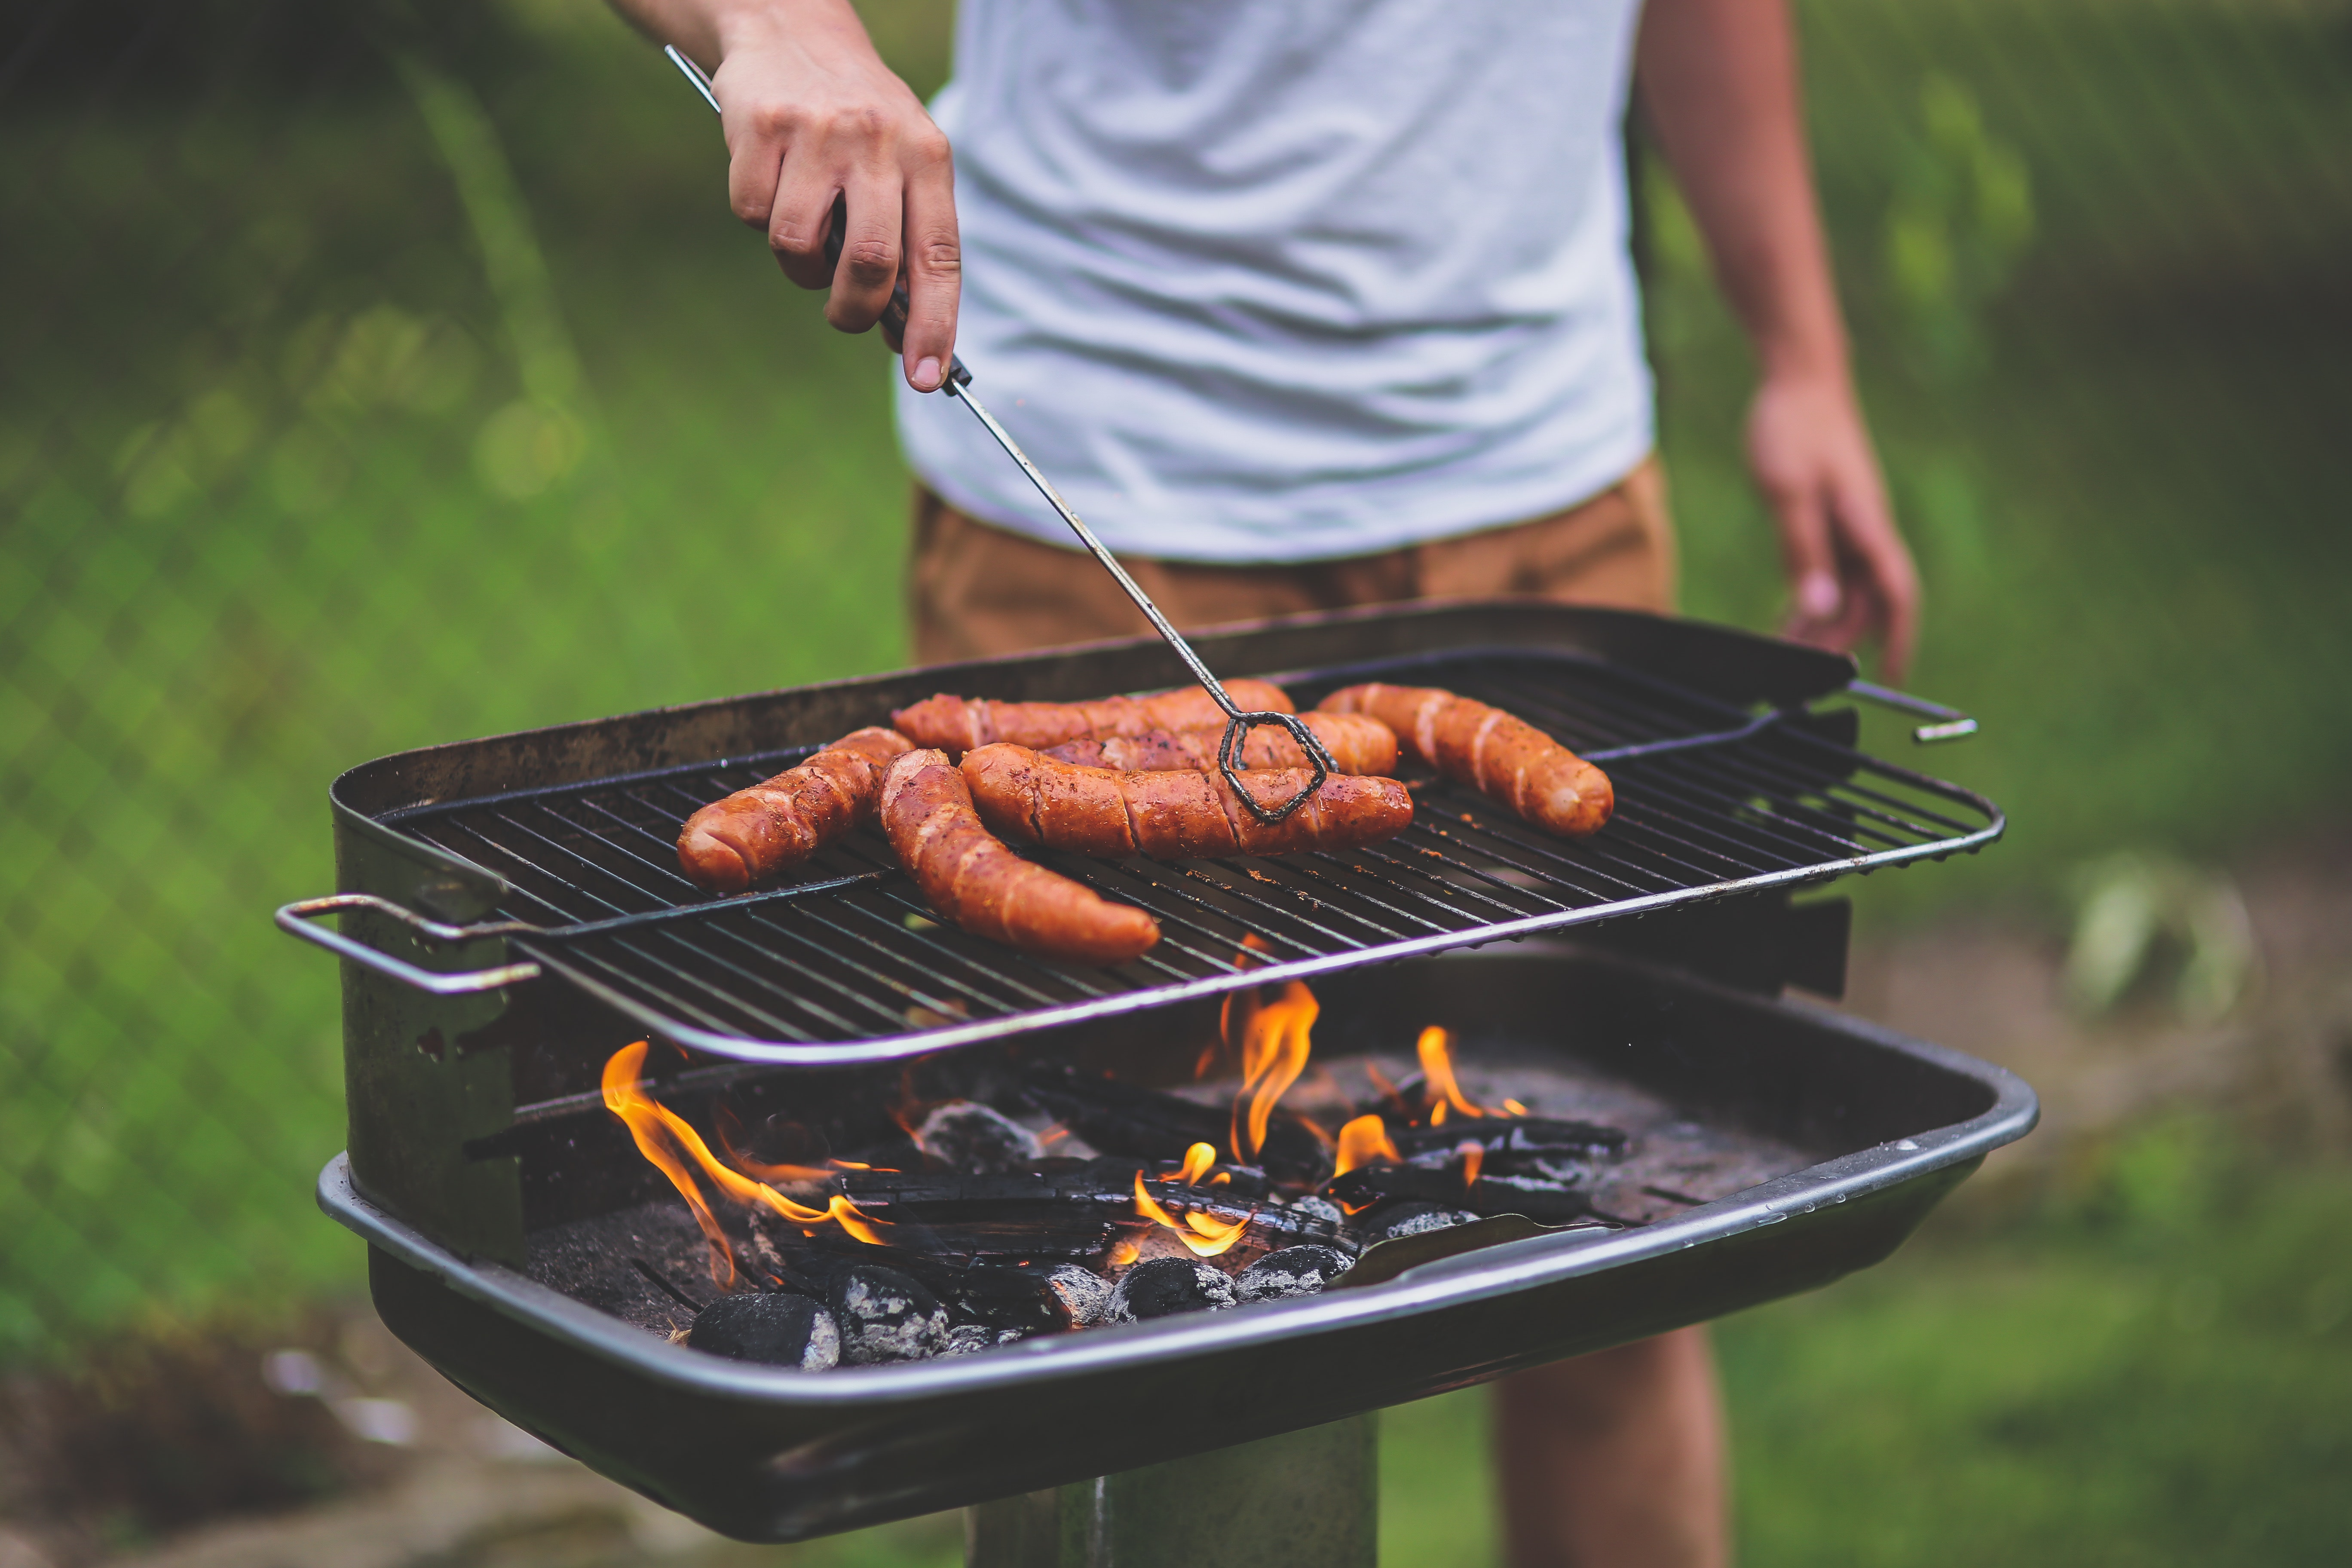 TOP 5 Barbecue Grills for A Tasty Summer cooking brats